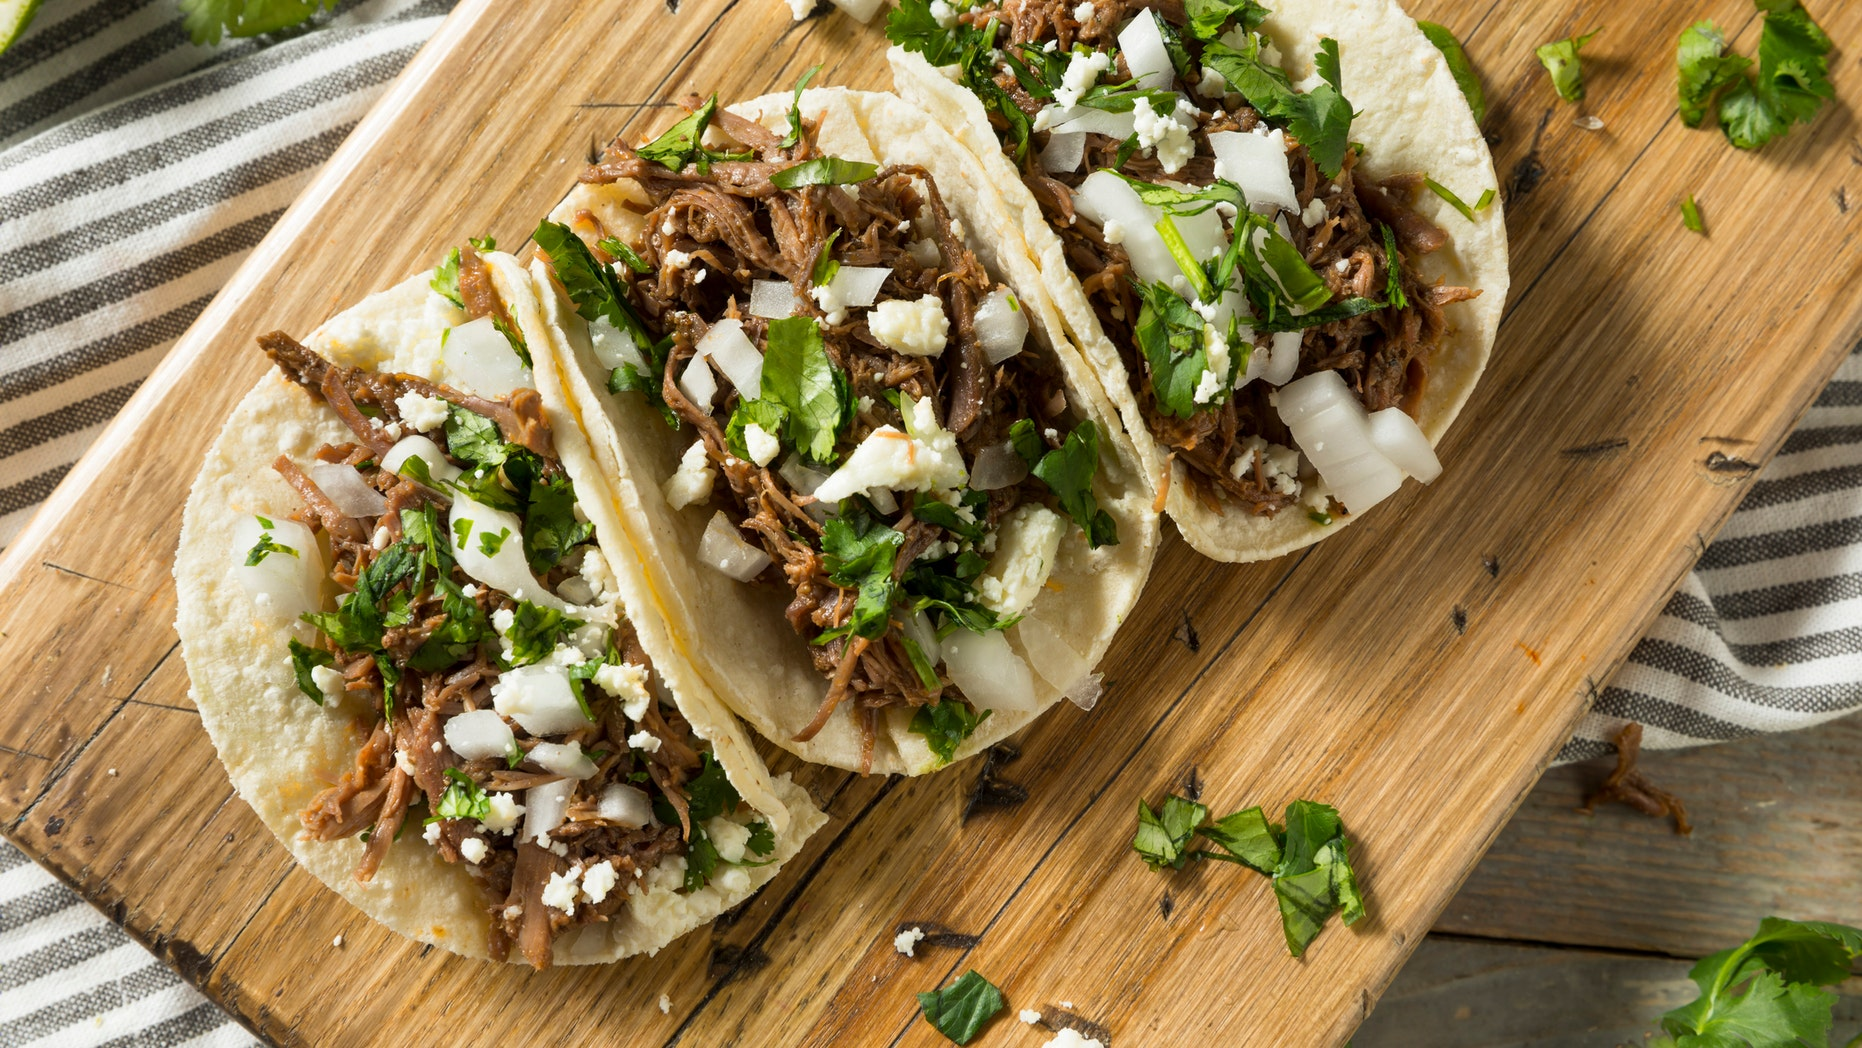 A taco truck in Humble, Texas, had a lot of business after the owner's daughter tweeted asking for support. (iStock)